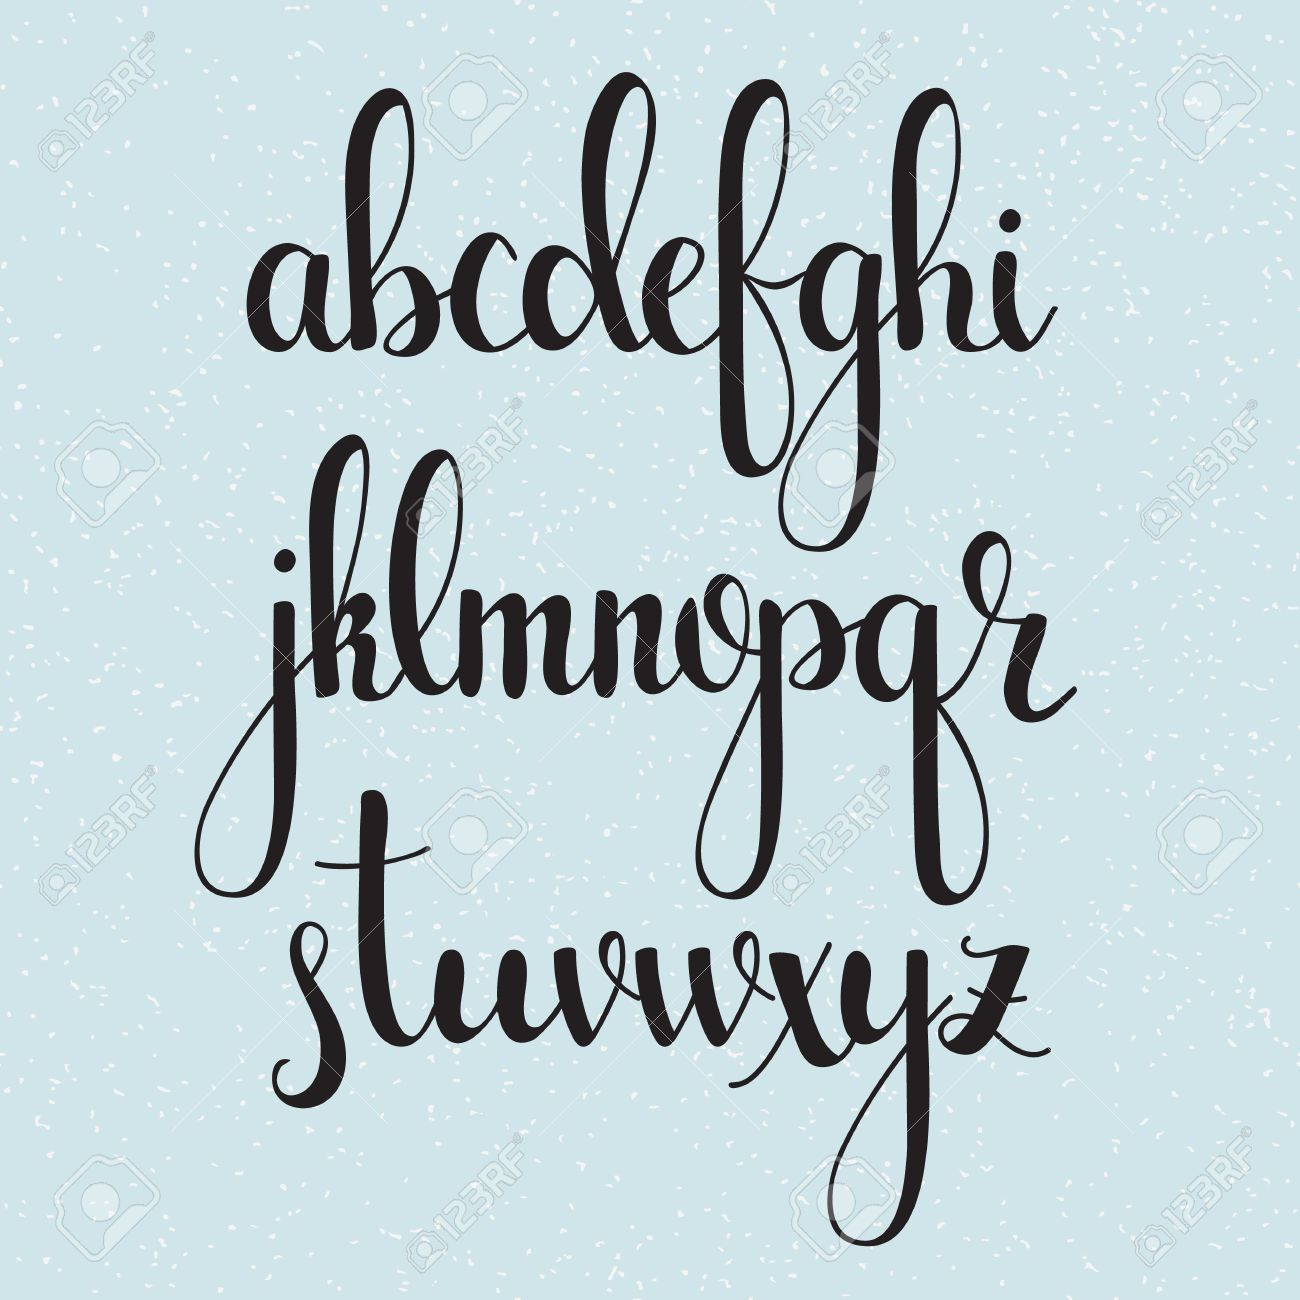 vector handwritten brush style modern calligraphy